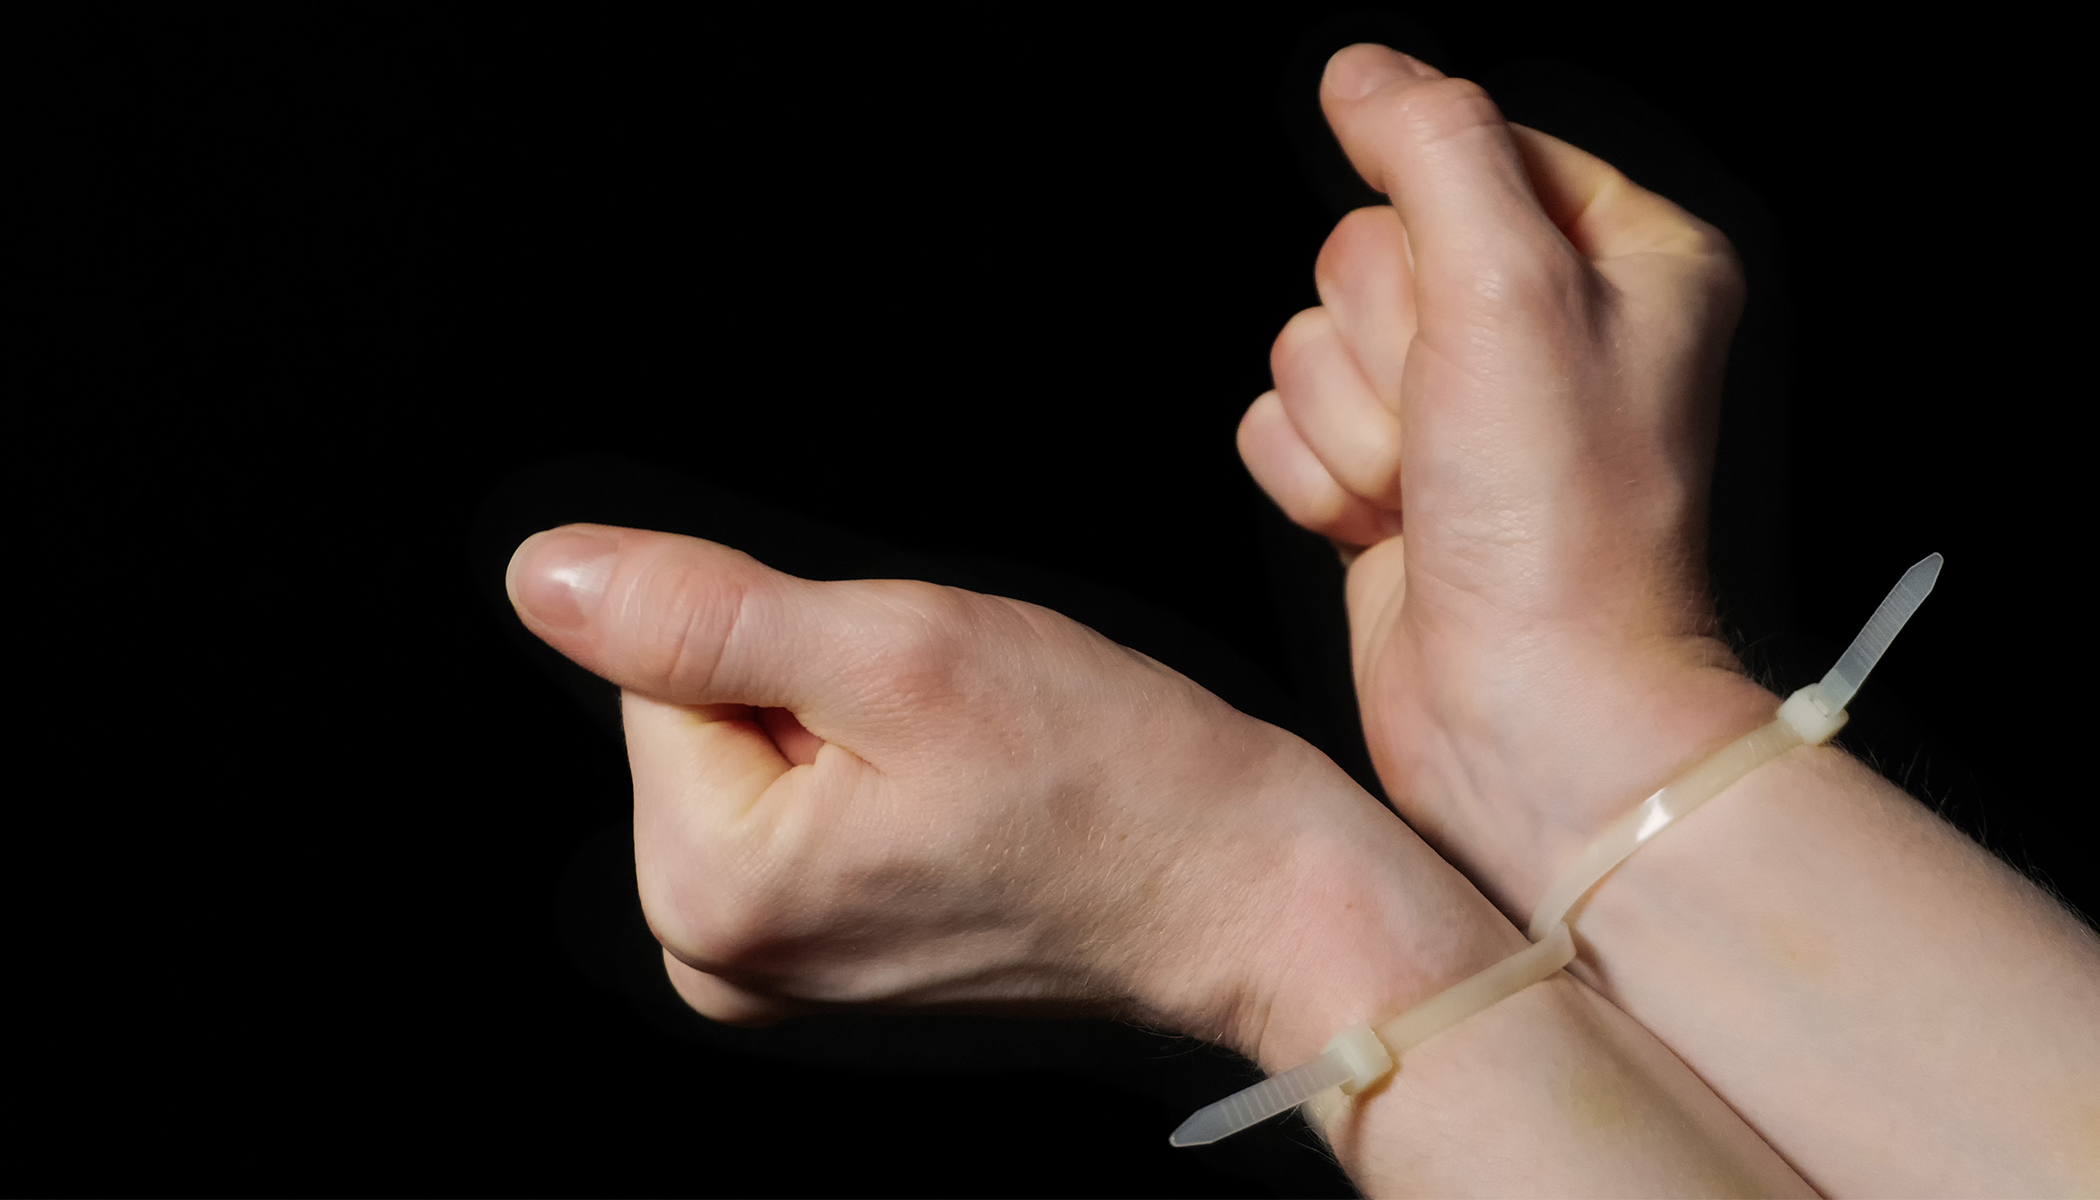 Easily Break Free From Zip Ties Around Your Wrist With This Simple Technique